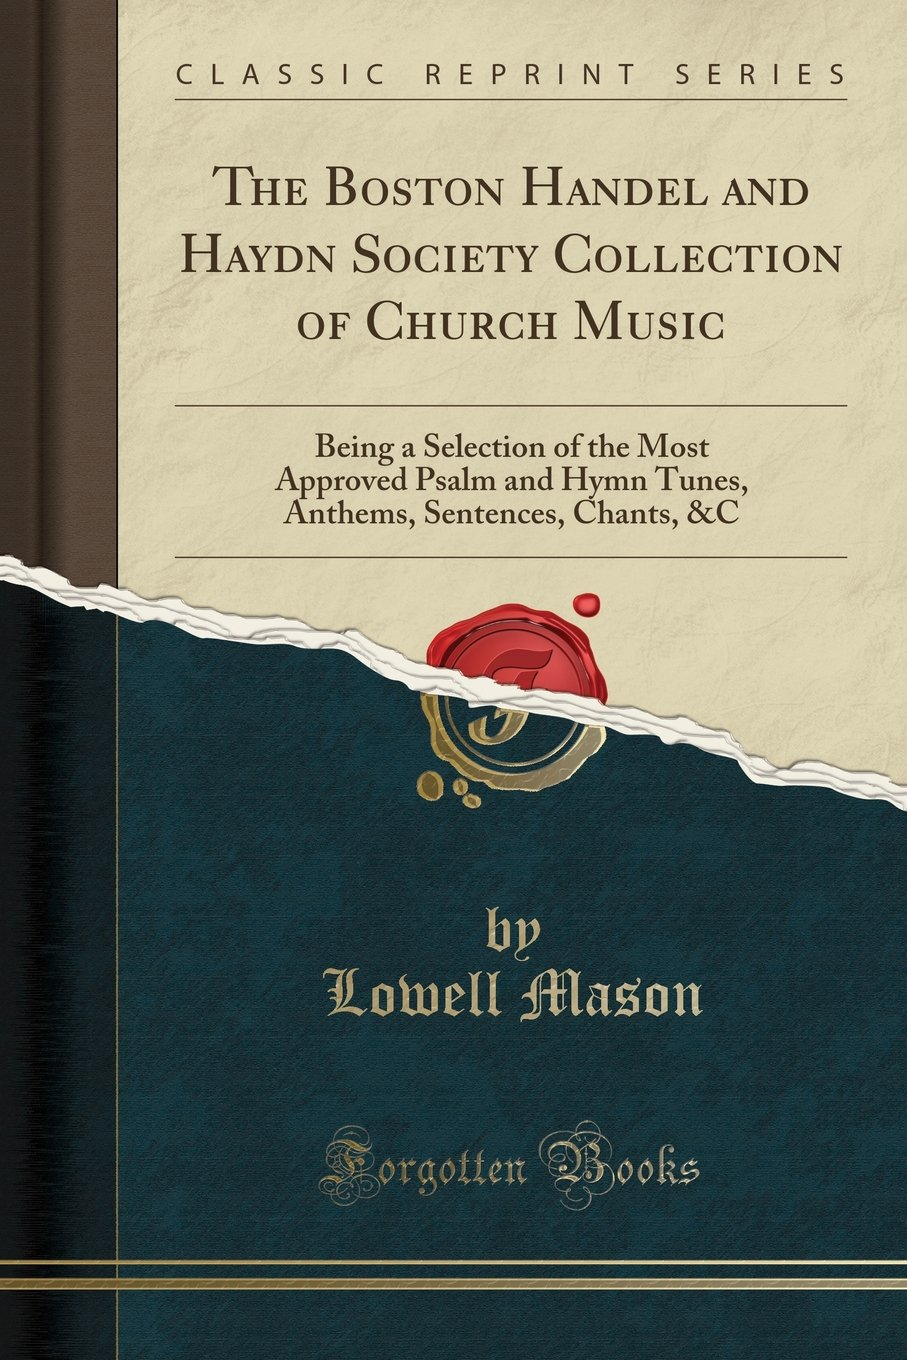 Read Online The Boston Handel and Haydn Society Collection of Church Music: Being a Selection of the Most Approved Psalm and Hymn Tunes, Anthems, Sentences, Chants, &C (Classic Reprint) PDF